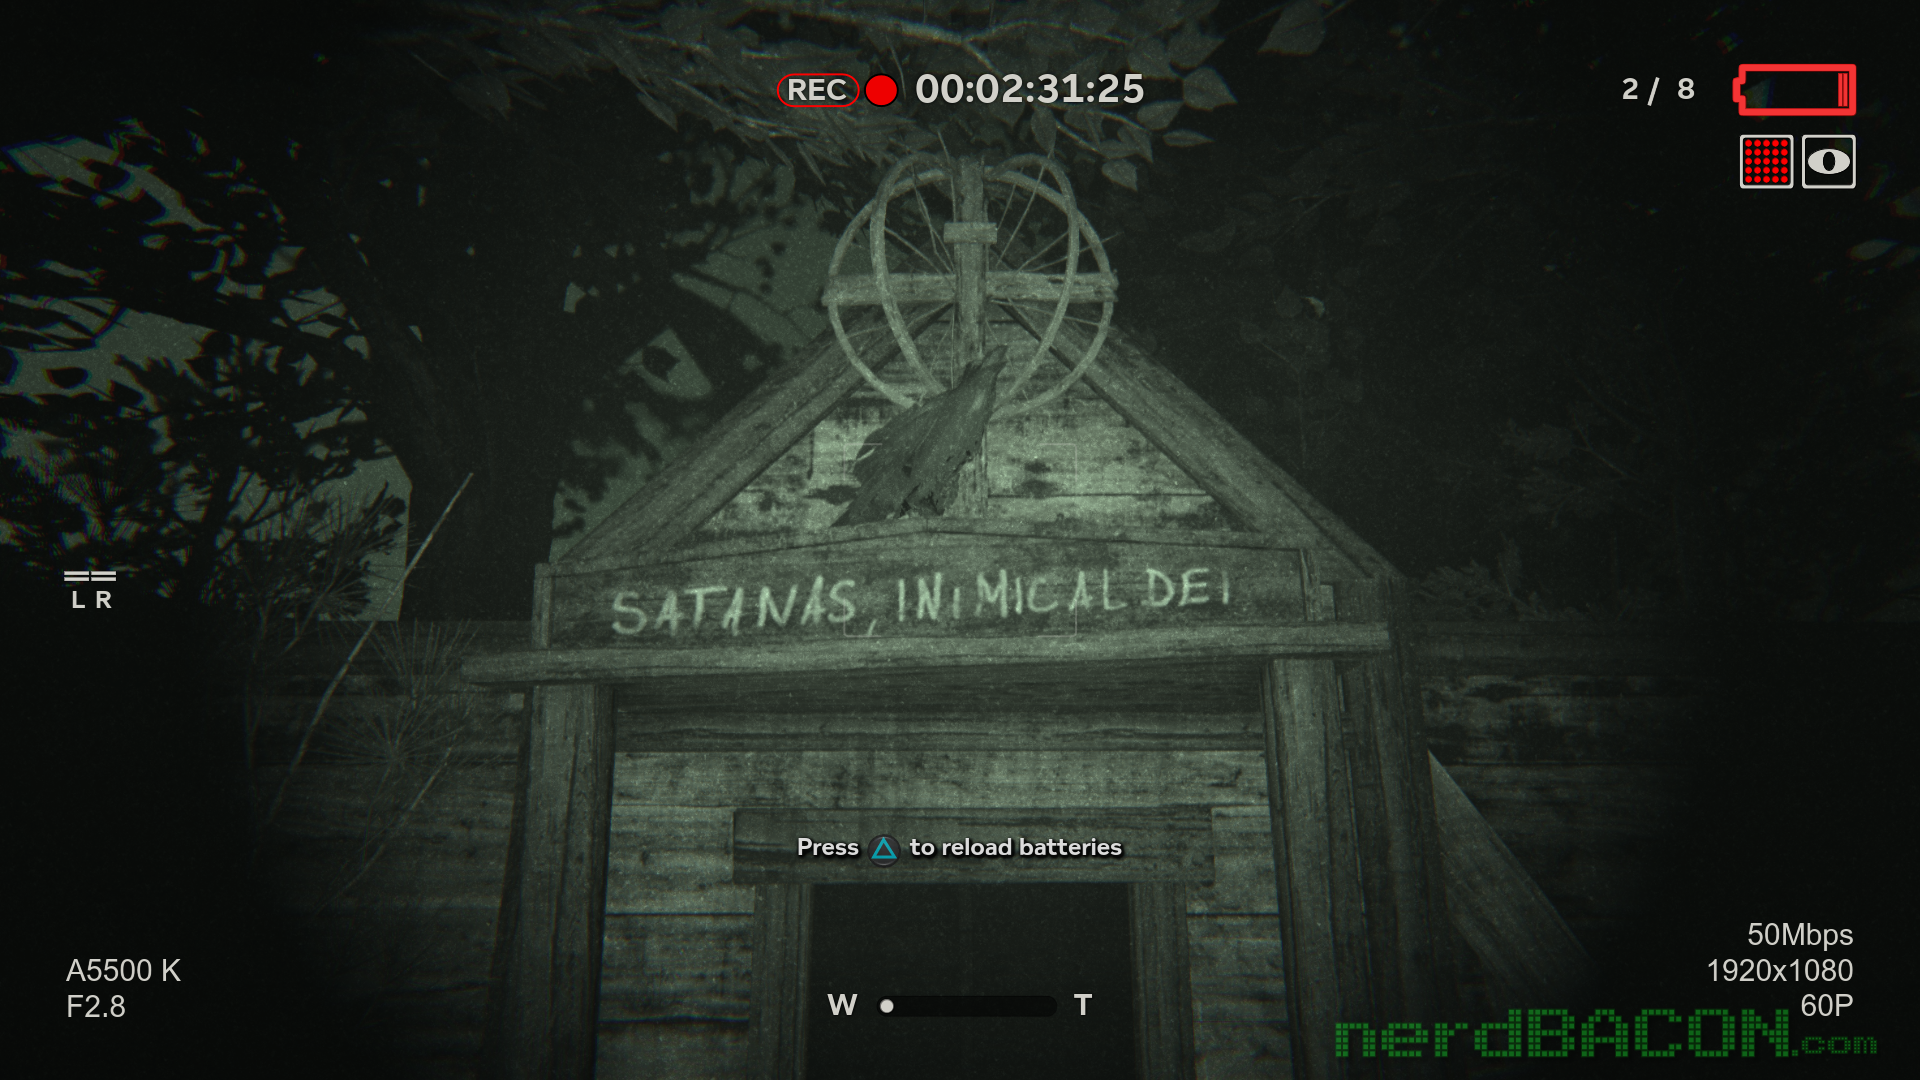 outlast 2 demo ps4 night vision camera